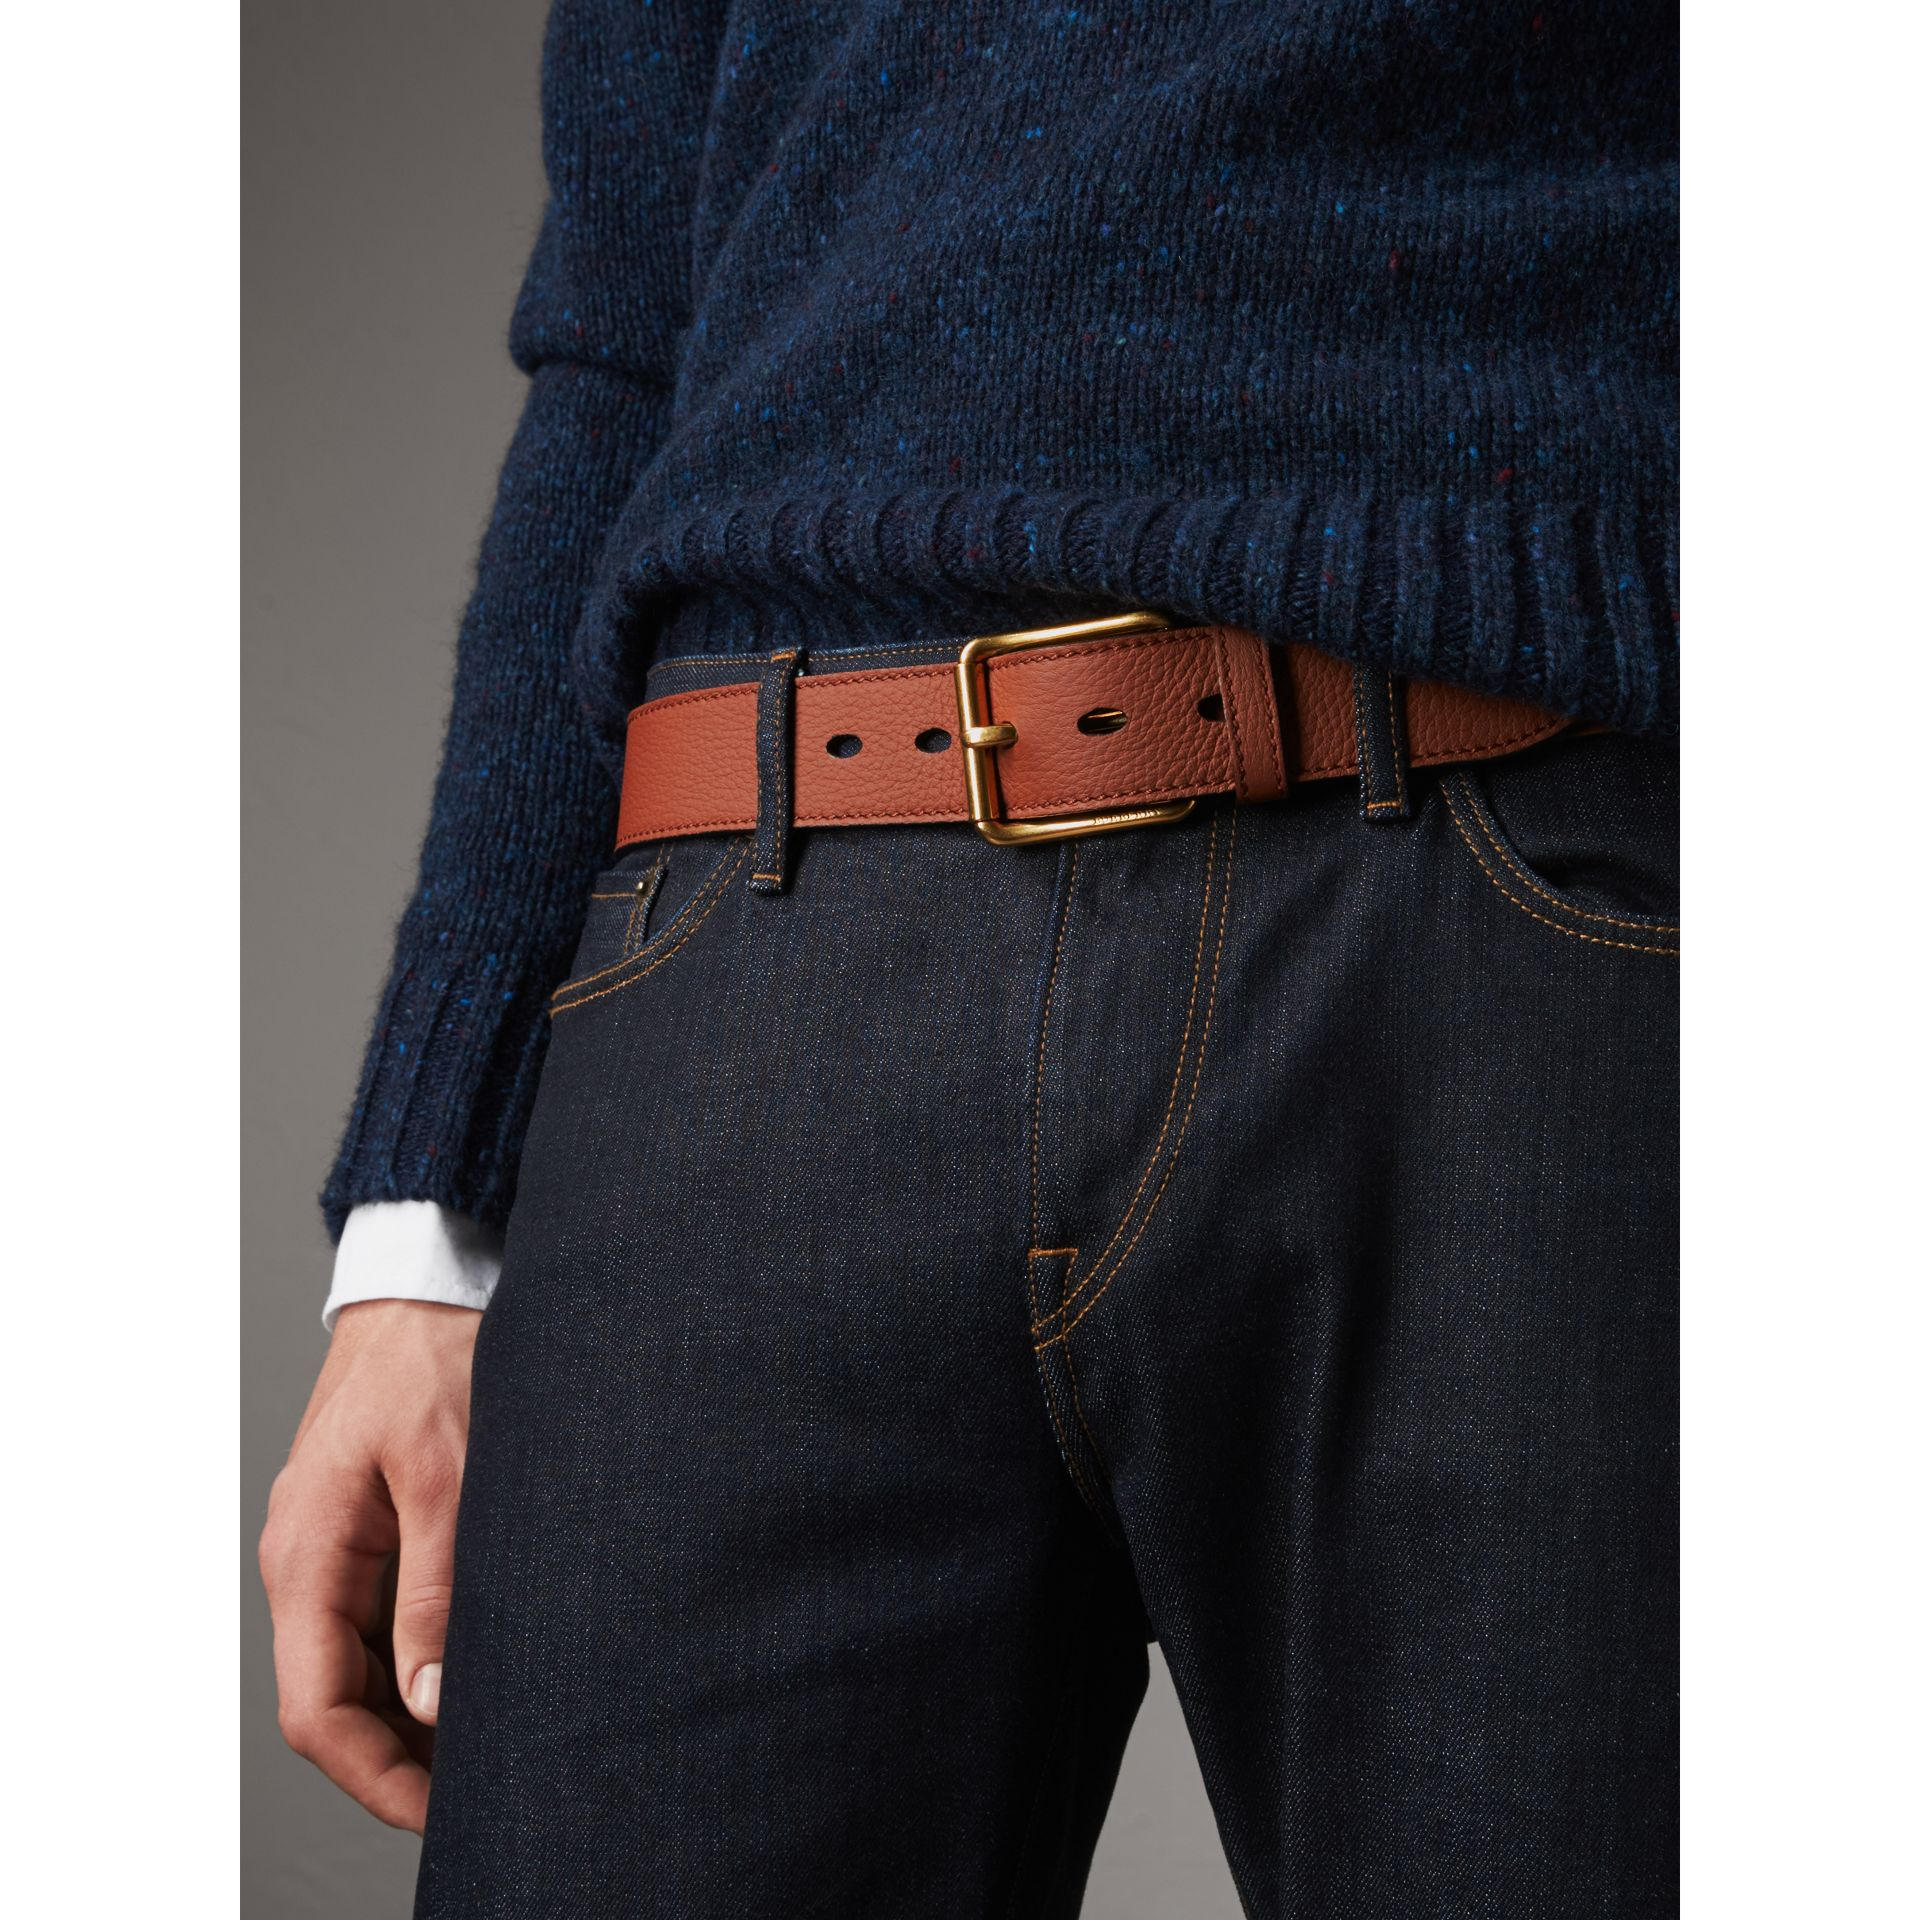 Grainy Leather Belt in Chestnut Brown - Men | Burberry Australia - gallery image 3